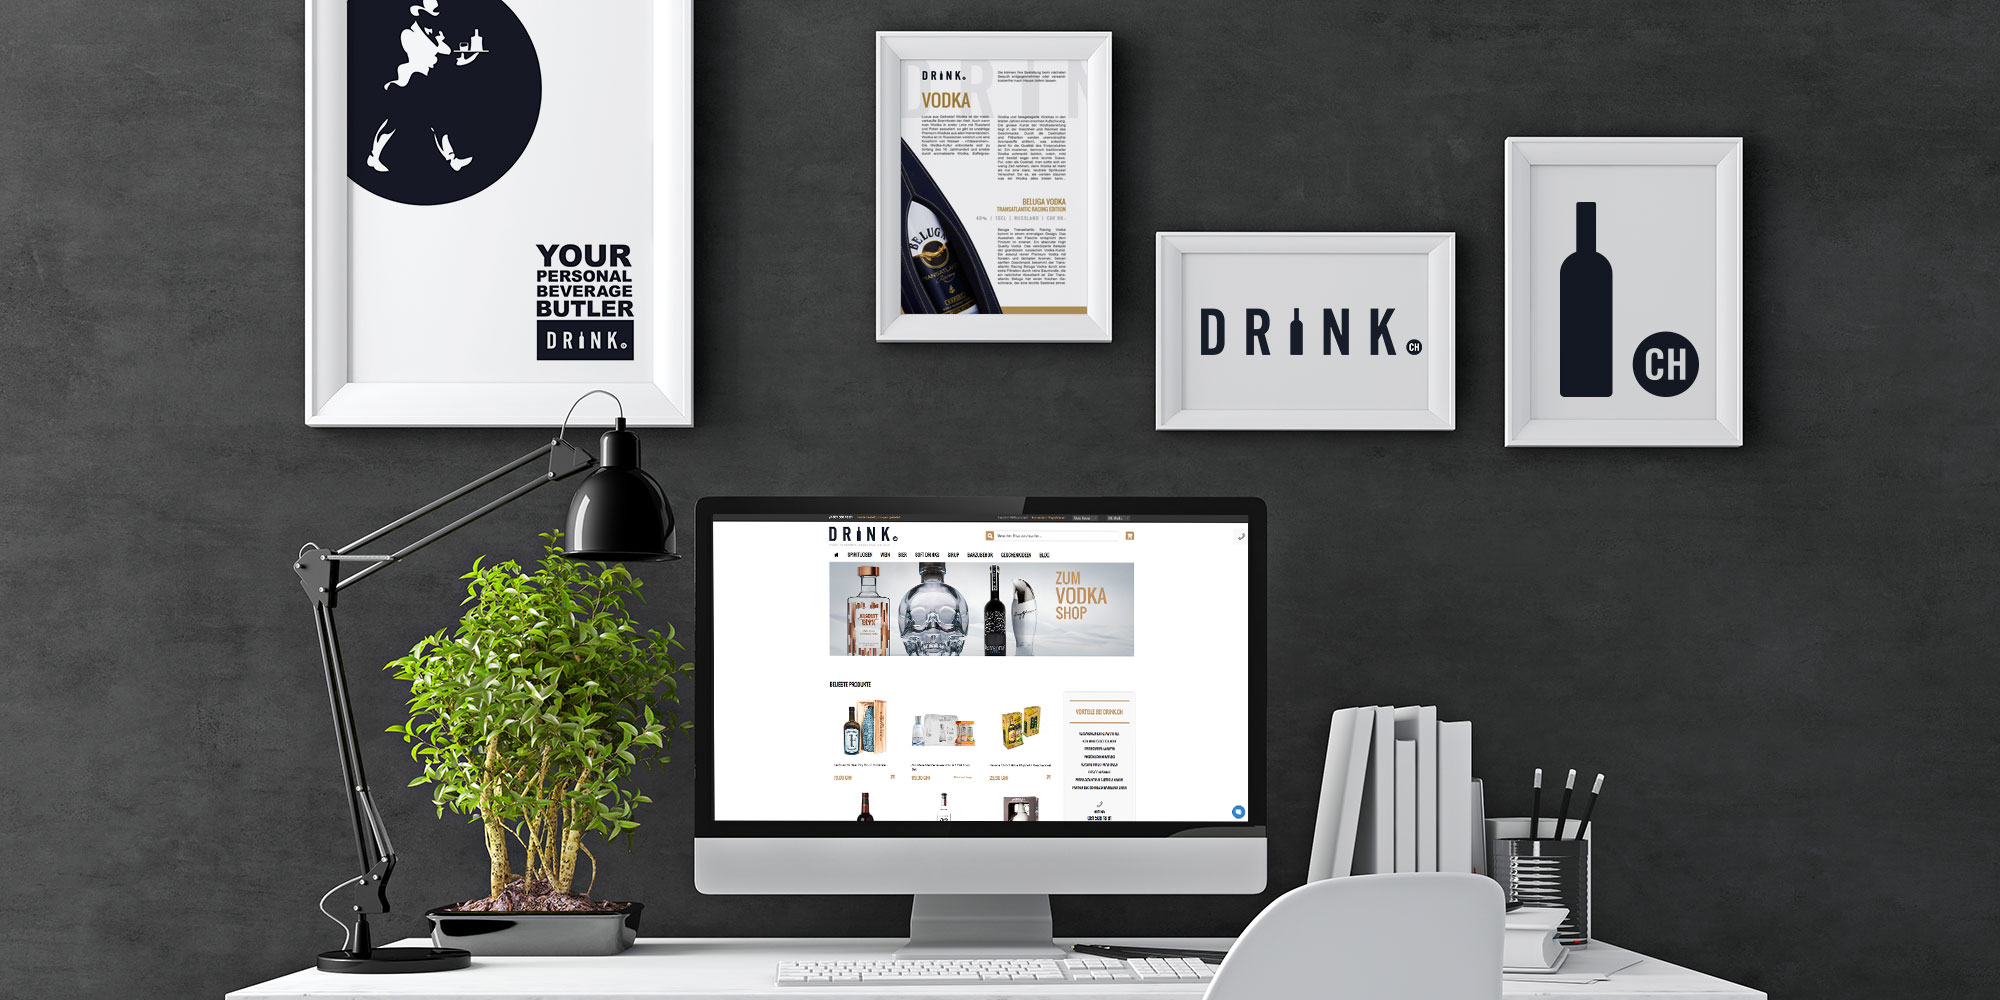 Drink.ch Corporate Design